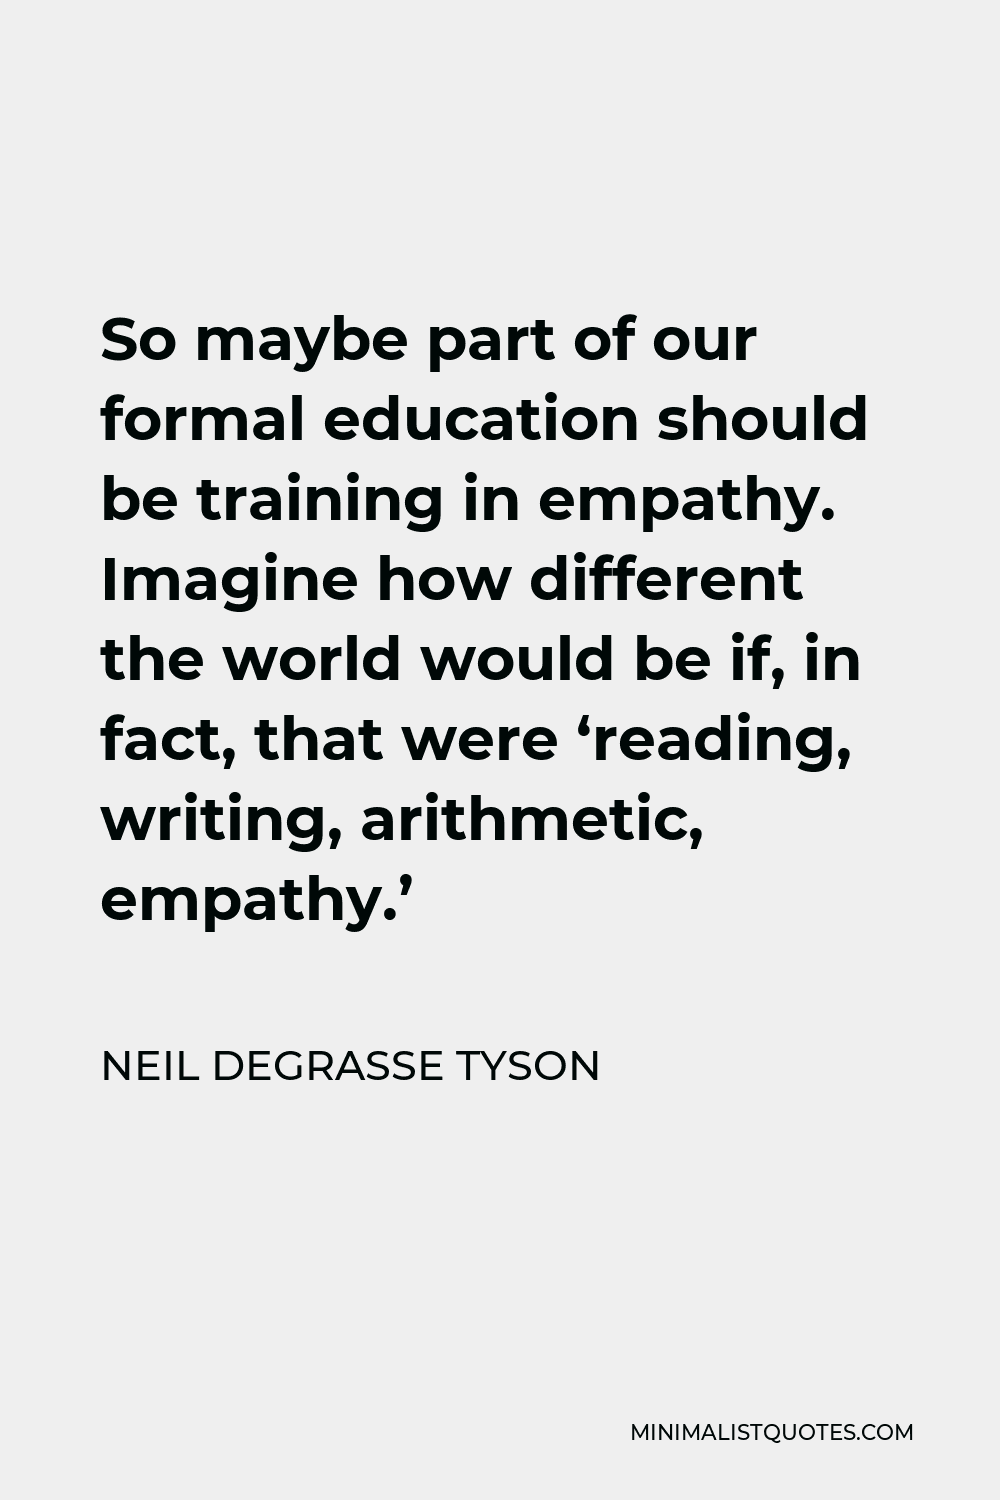 Neil deGrasse Tyson Quote - So maybe part of our formal education should be training in empathy. Imagine how different the world would be if, in fact, that were 'reading, writing, arithmetic, empathy.'